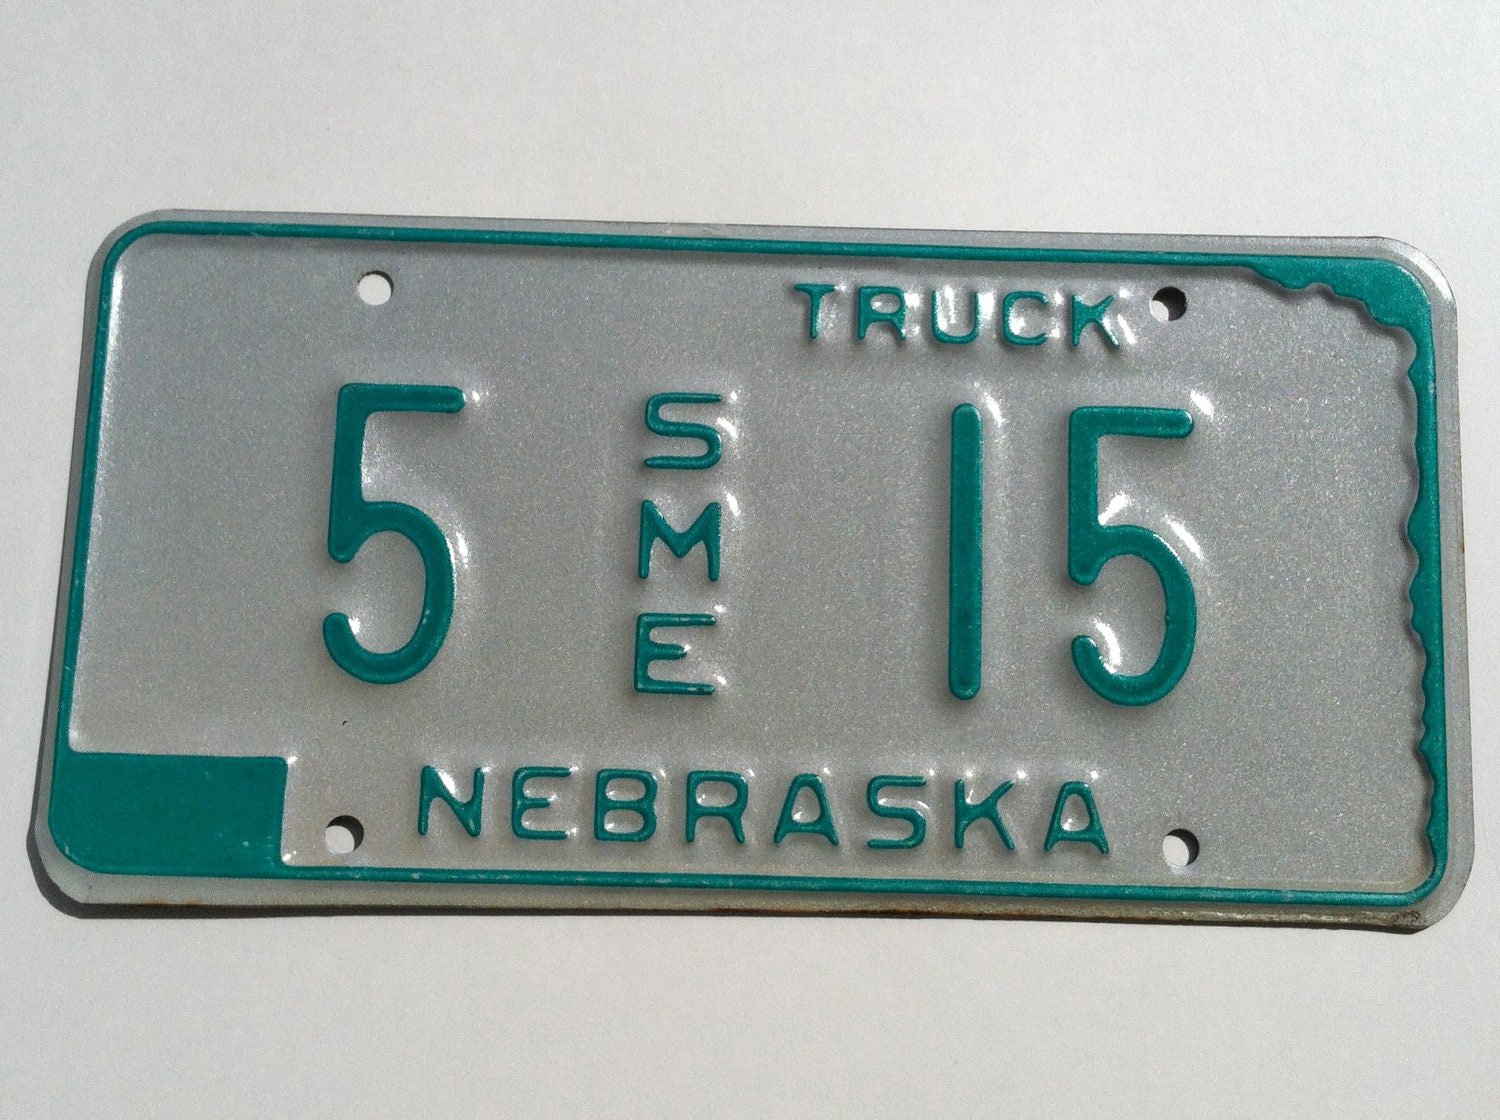 Nebraska License Plate Vintage/Upcycling Supply - SME/Truck Plate - IdleHandsYarnSupply